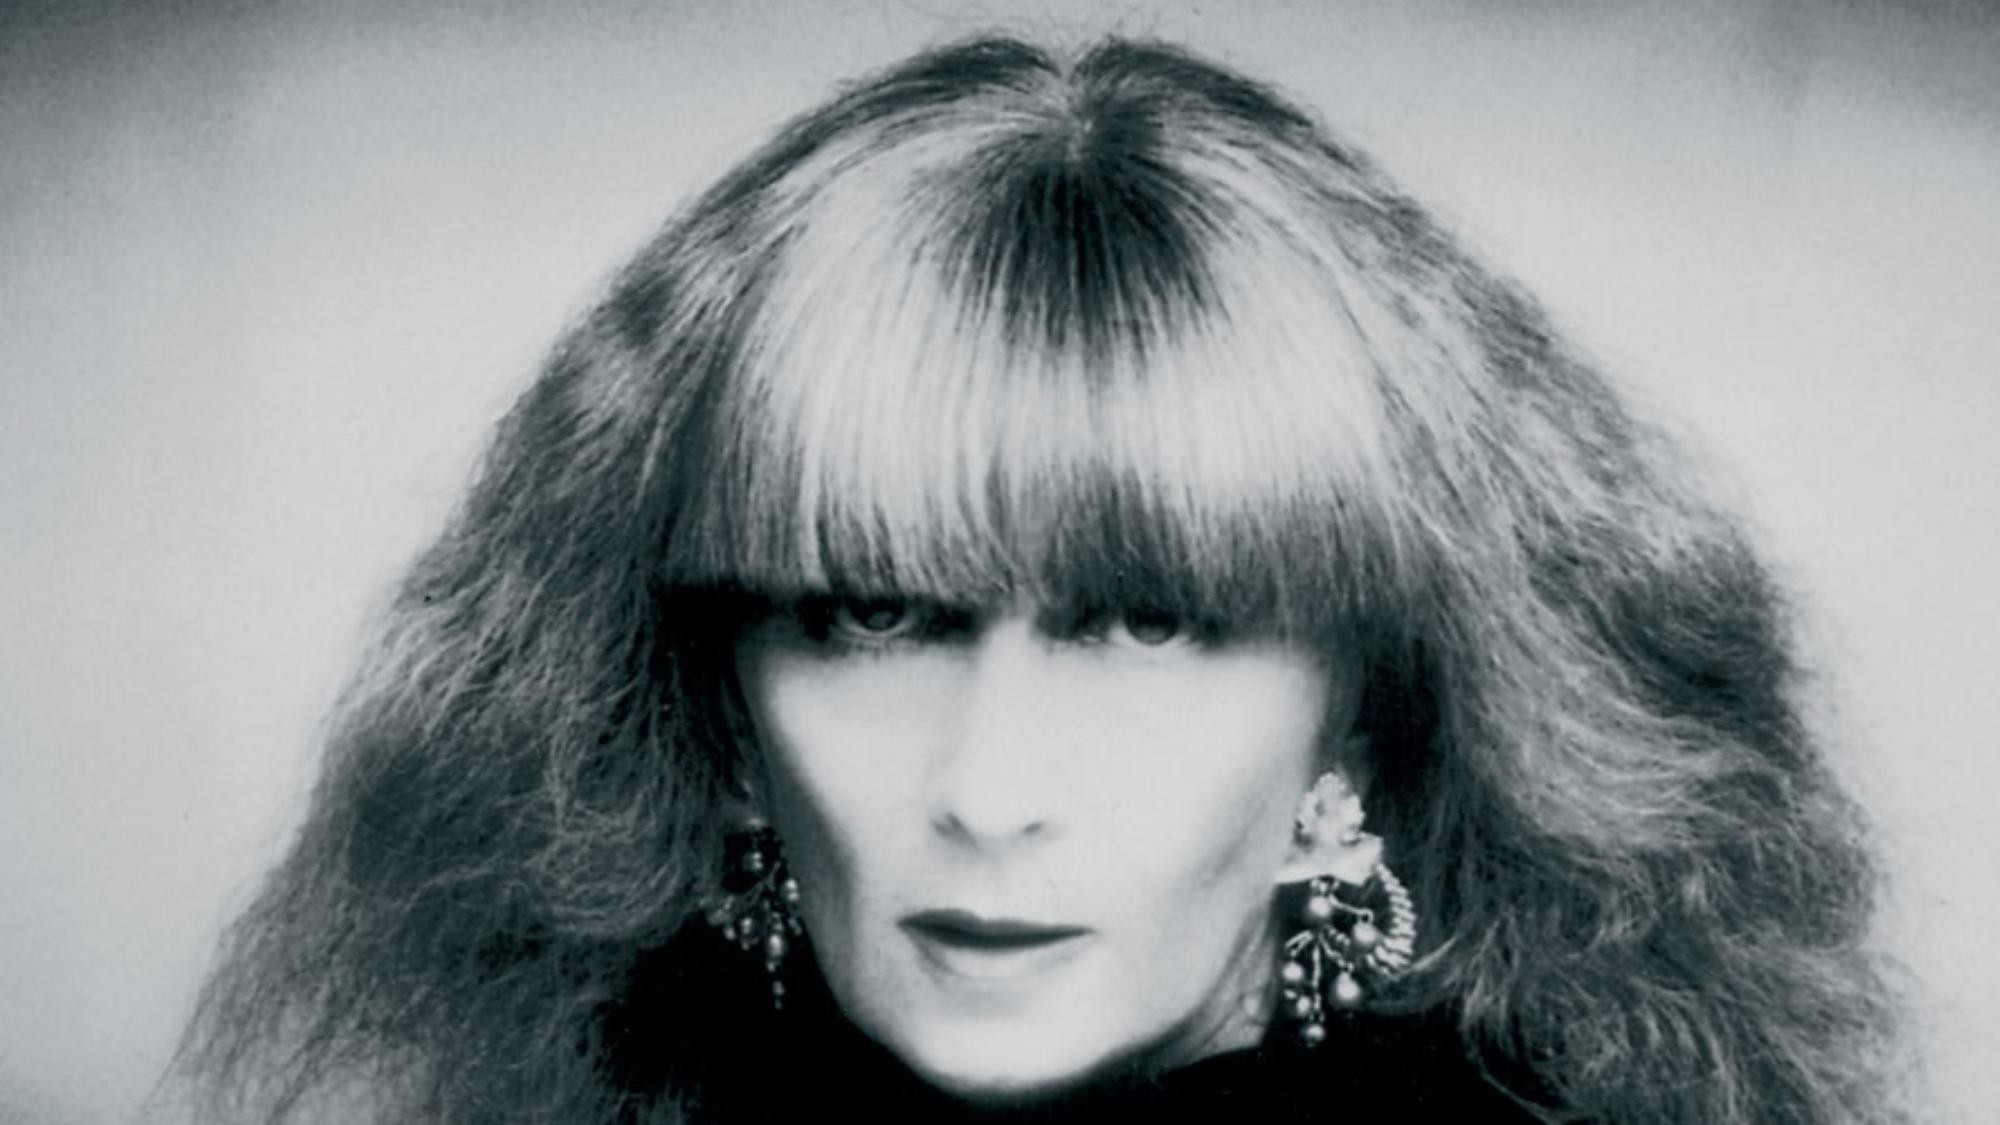 iconic french designer sonia rykiel has passed away